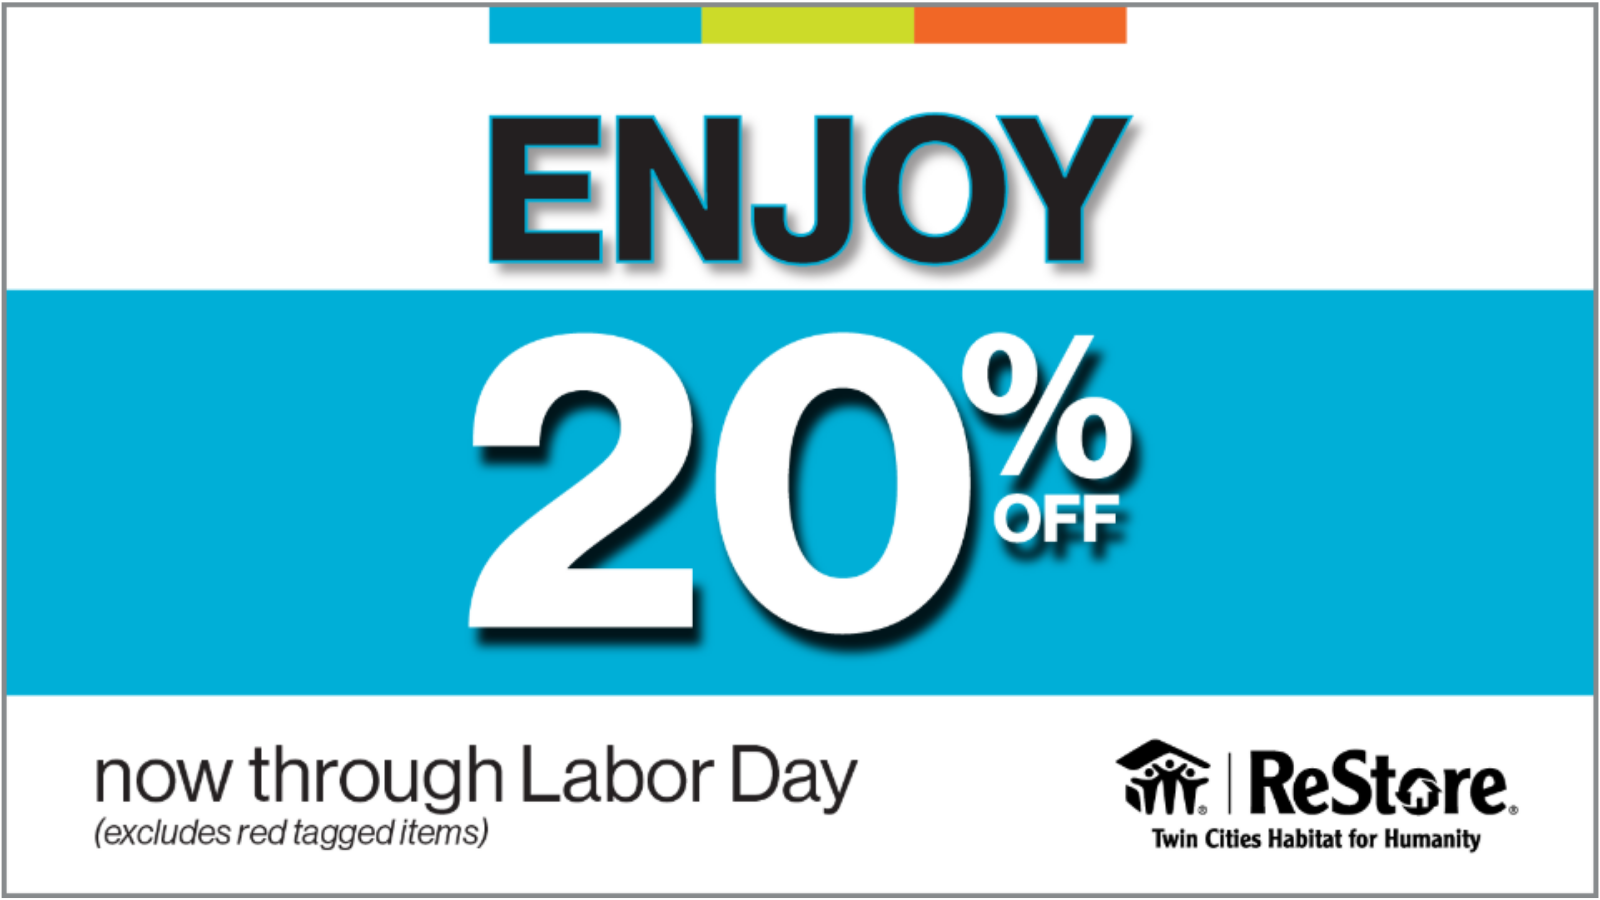 """Enjoy 20% off"" sign with a blue banner in the middle. At the bottom the text reads ""now through Labor Day (excludes red tagged items)"" and the ReStore logo is on the same line on the right side. A small blue, green, and orange blocked line is visible at the top of the image."